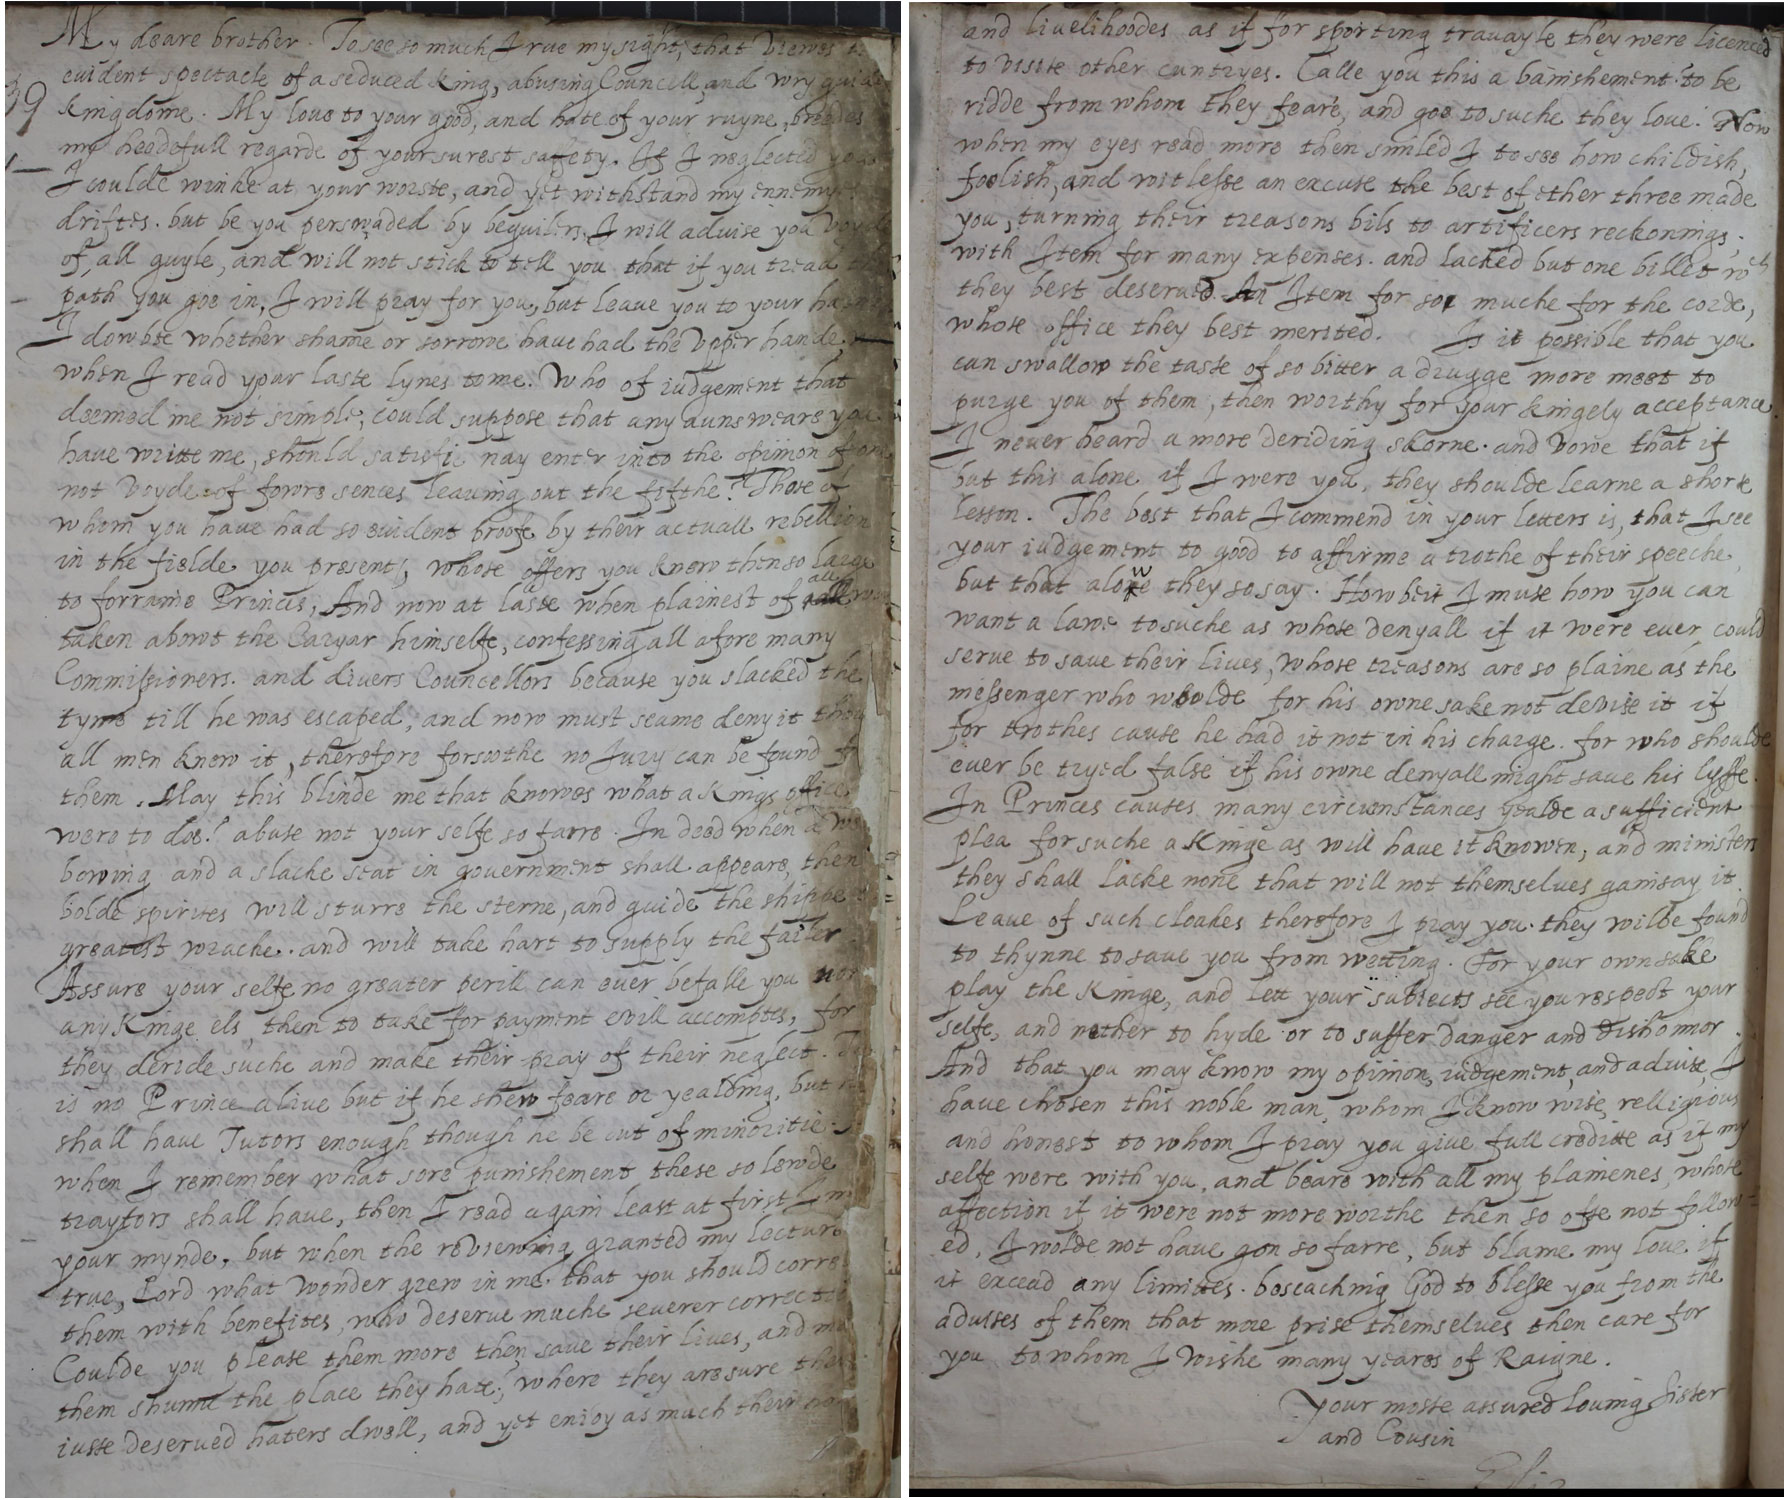 Elizabeth I to Lord Henry and Lady Margery Norris, 6 September 1599 (SP 12.272 f.161)